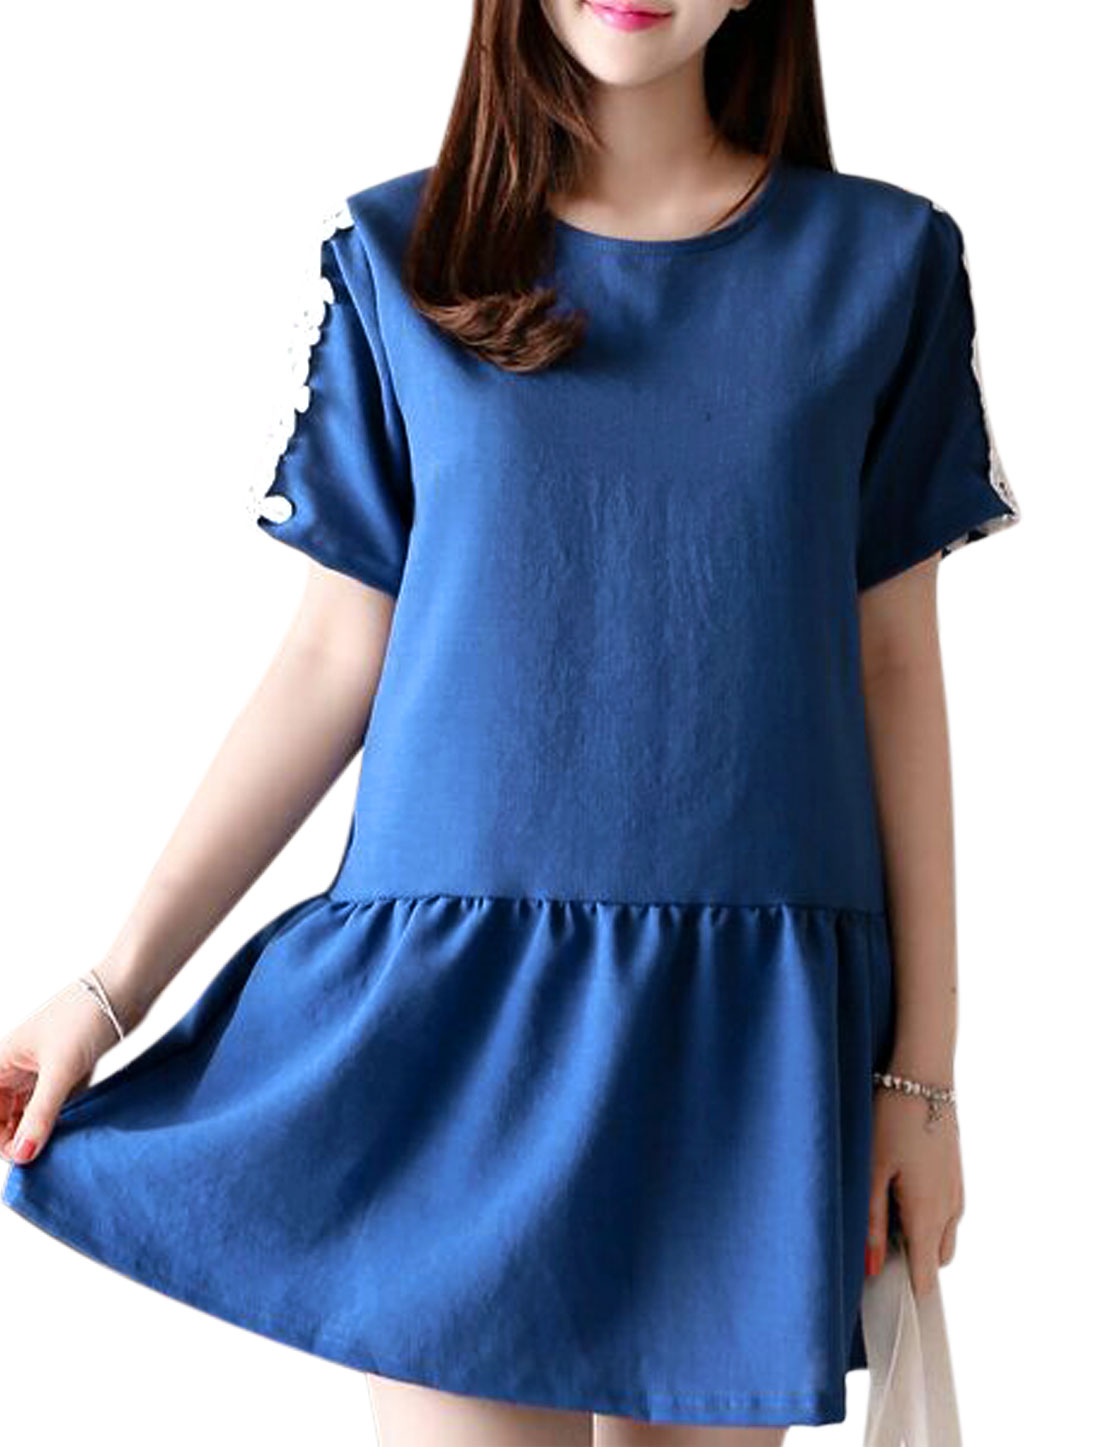 Women Short Sleeve Round Neck Crochet Casual Dresses Royal Blue S